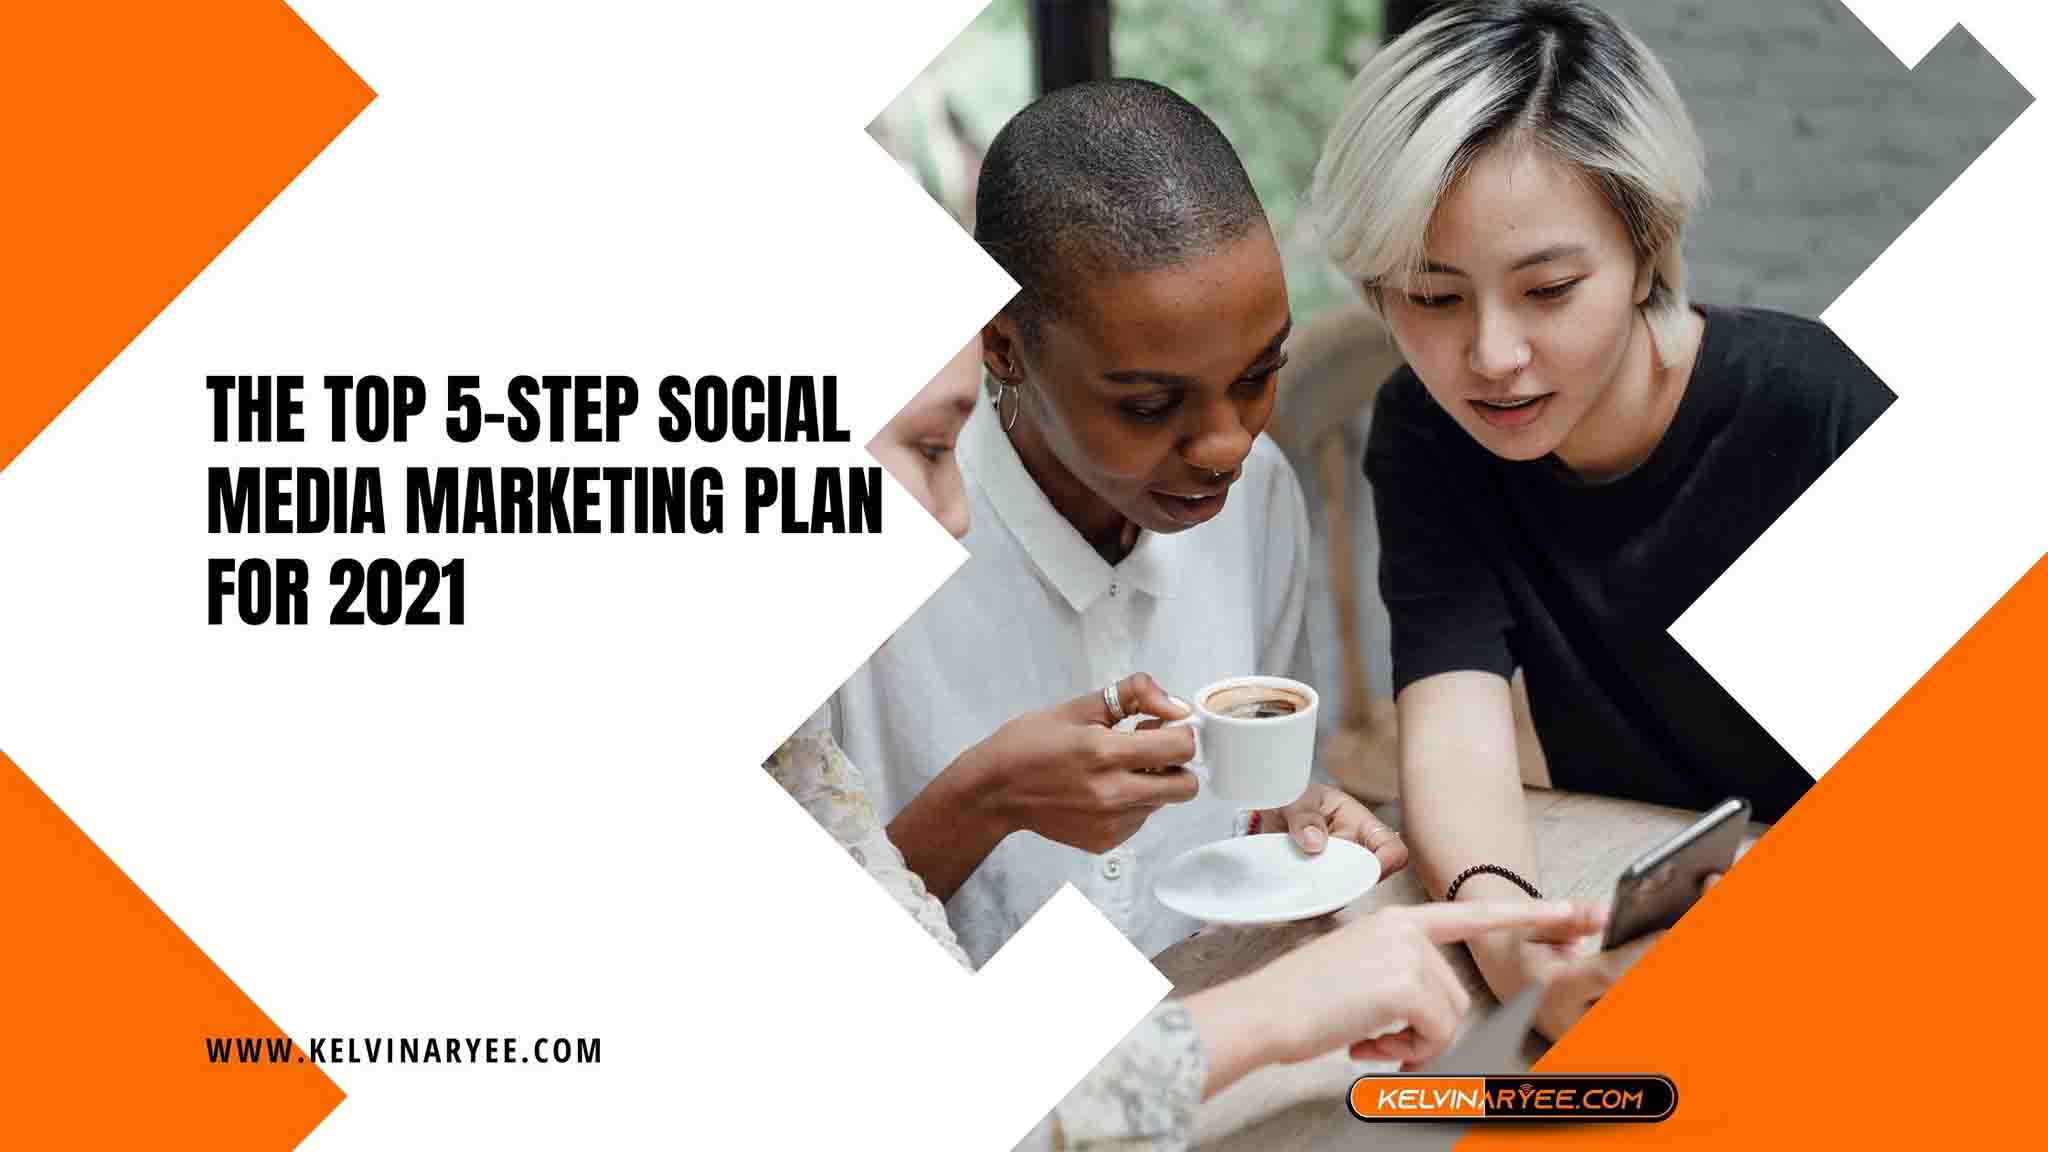 The Top 5-Step Social Media Marketing Plan For 2021